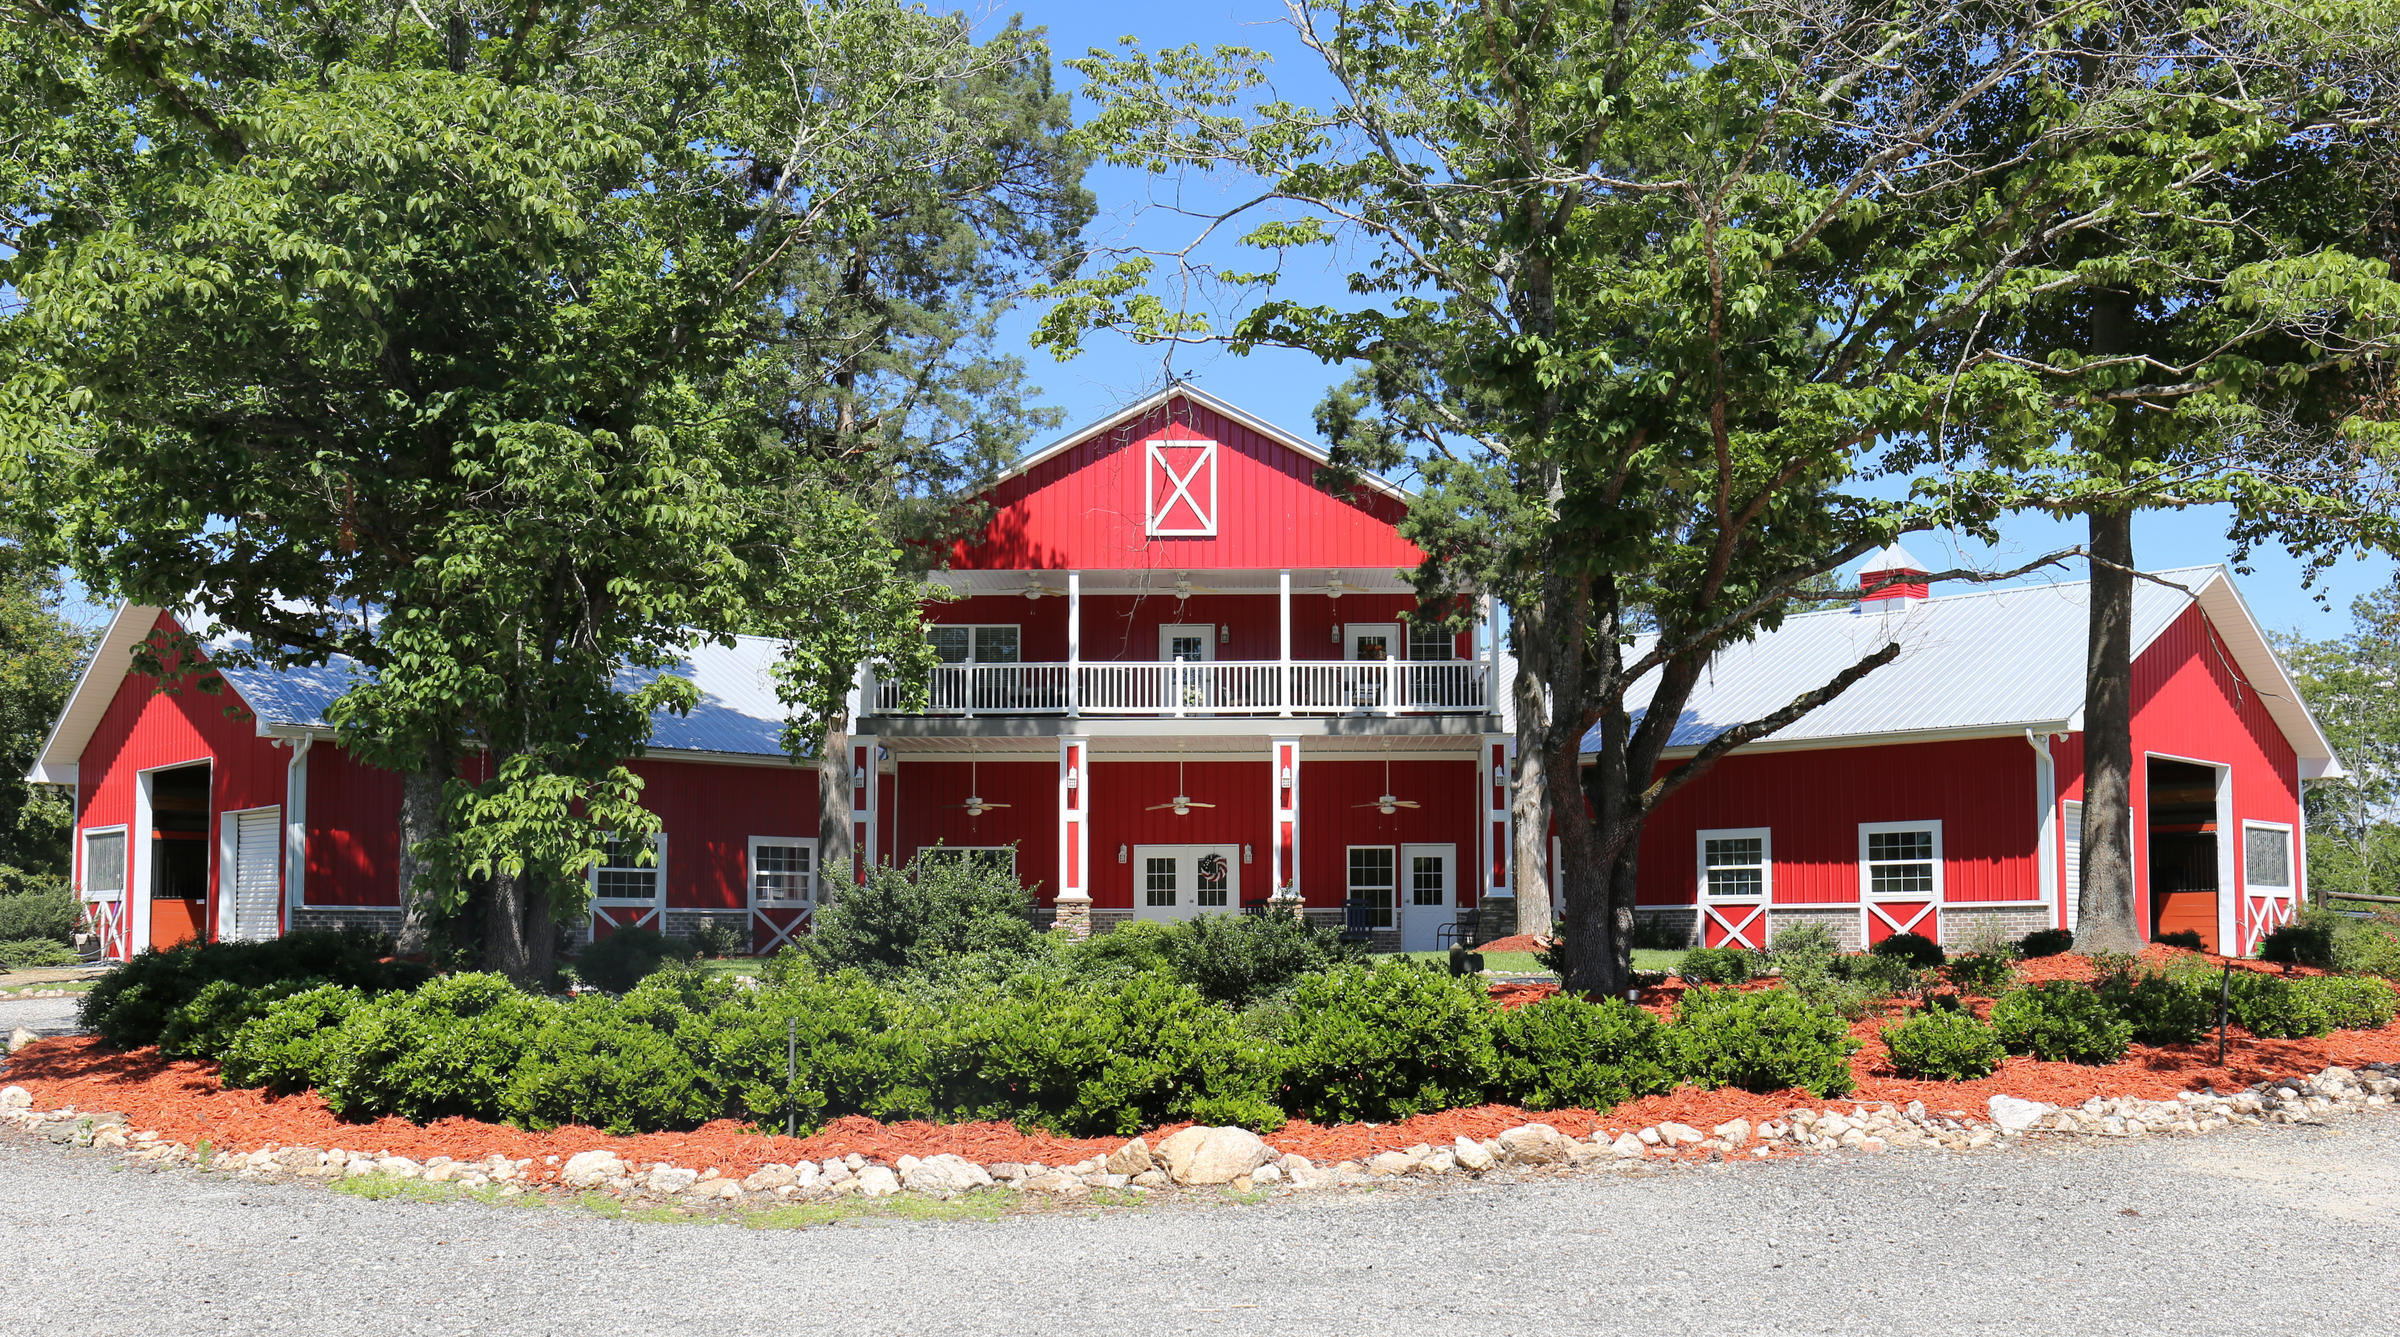 Narrative The Big Red Barn Offers Help For Veterans Dealing